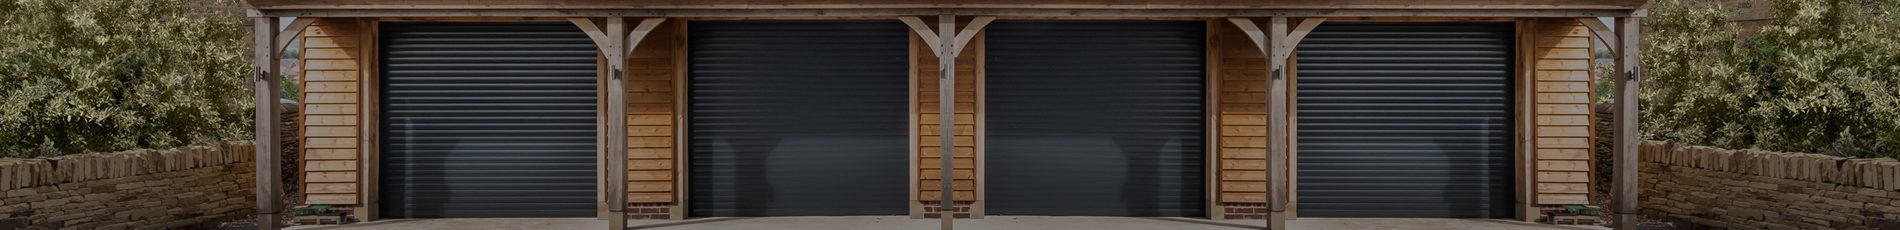 Roller Garage Doors Sheffield